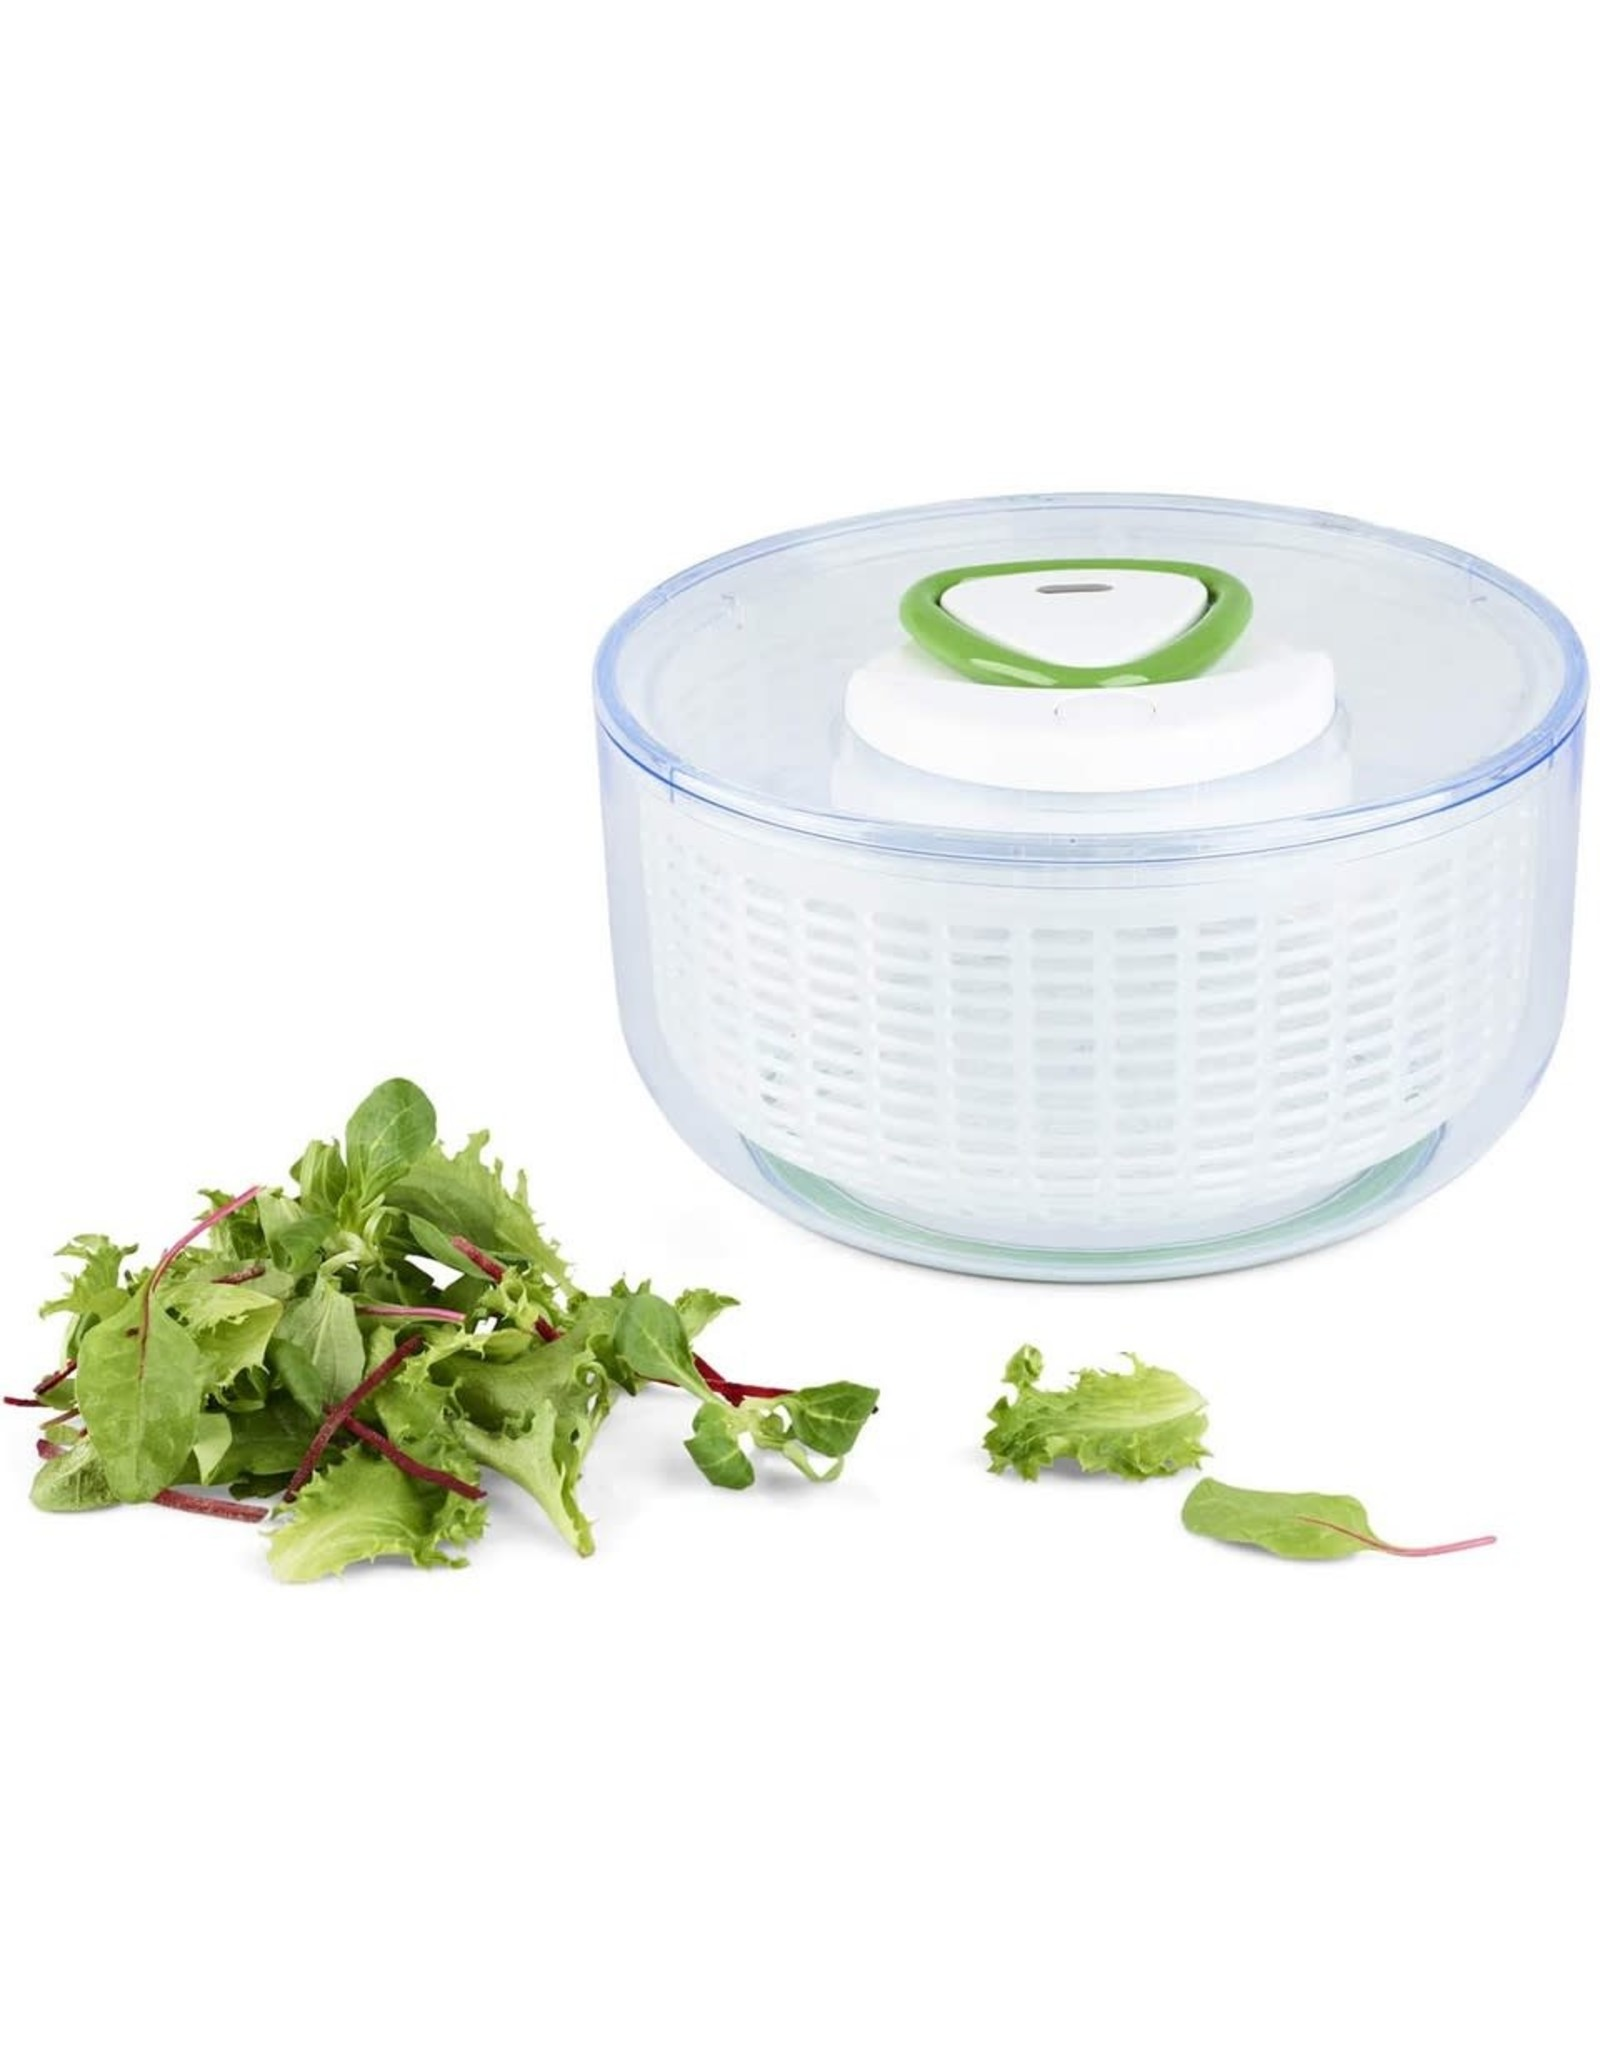 Zyliss Easy Spin Salad Spinner